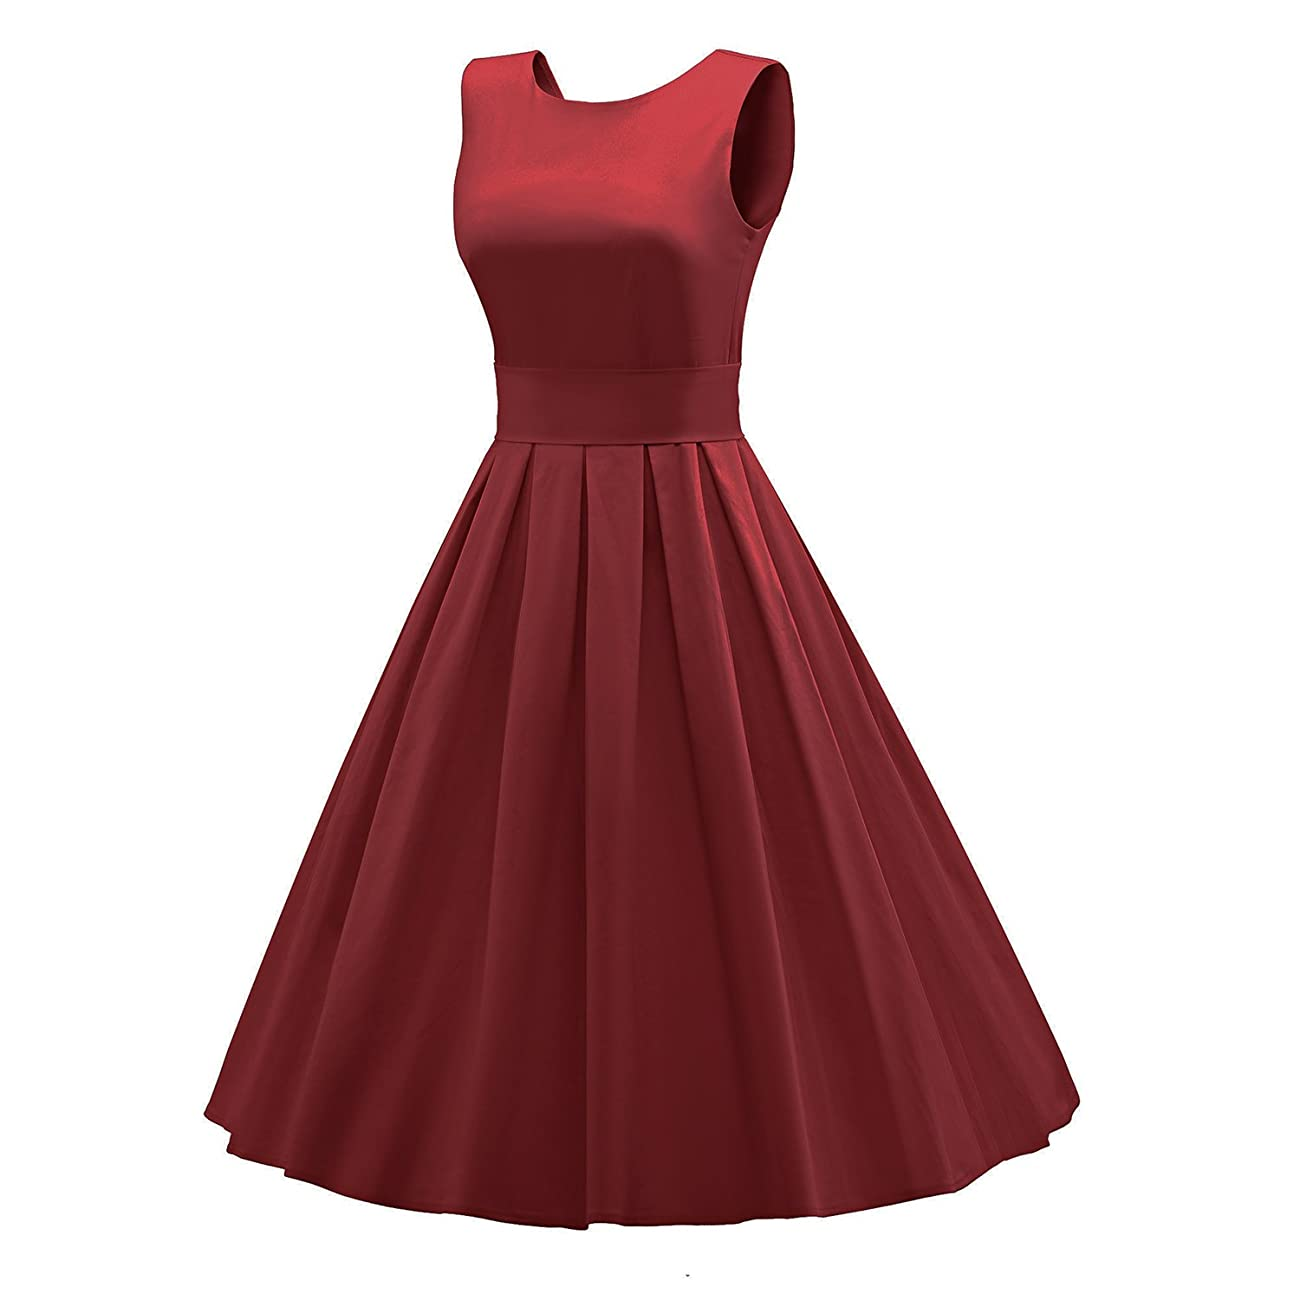 LUOUSE 'Lana' Vintage 1950's Inspired Rockabilly Swing Dress 1